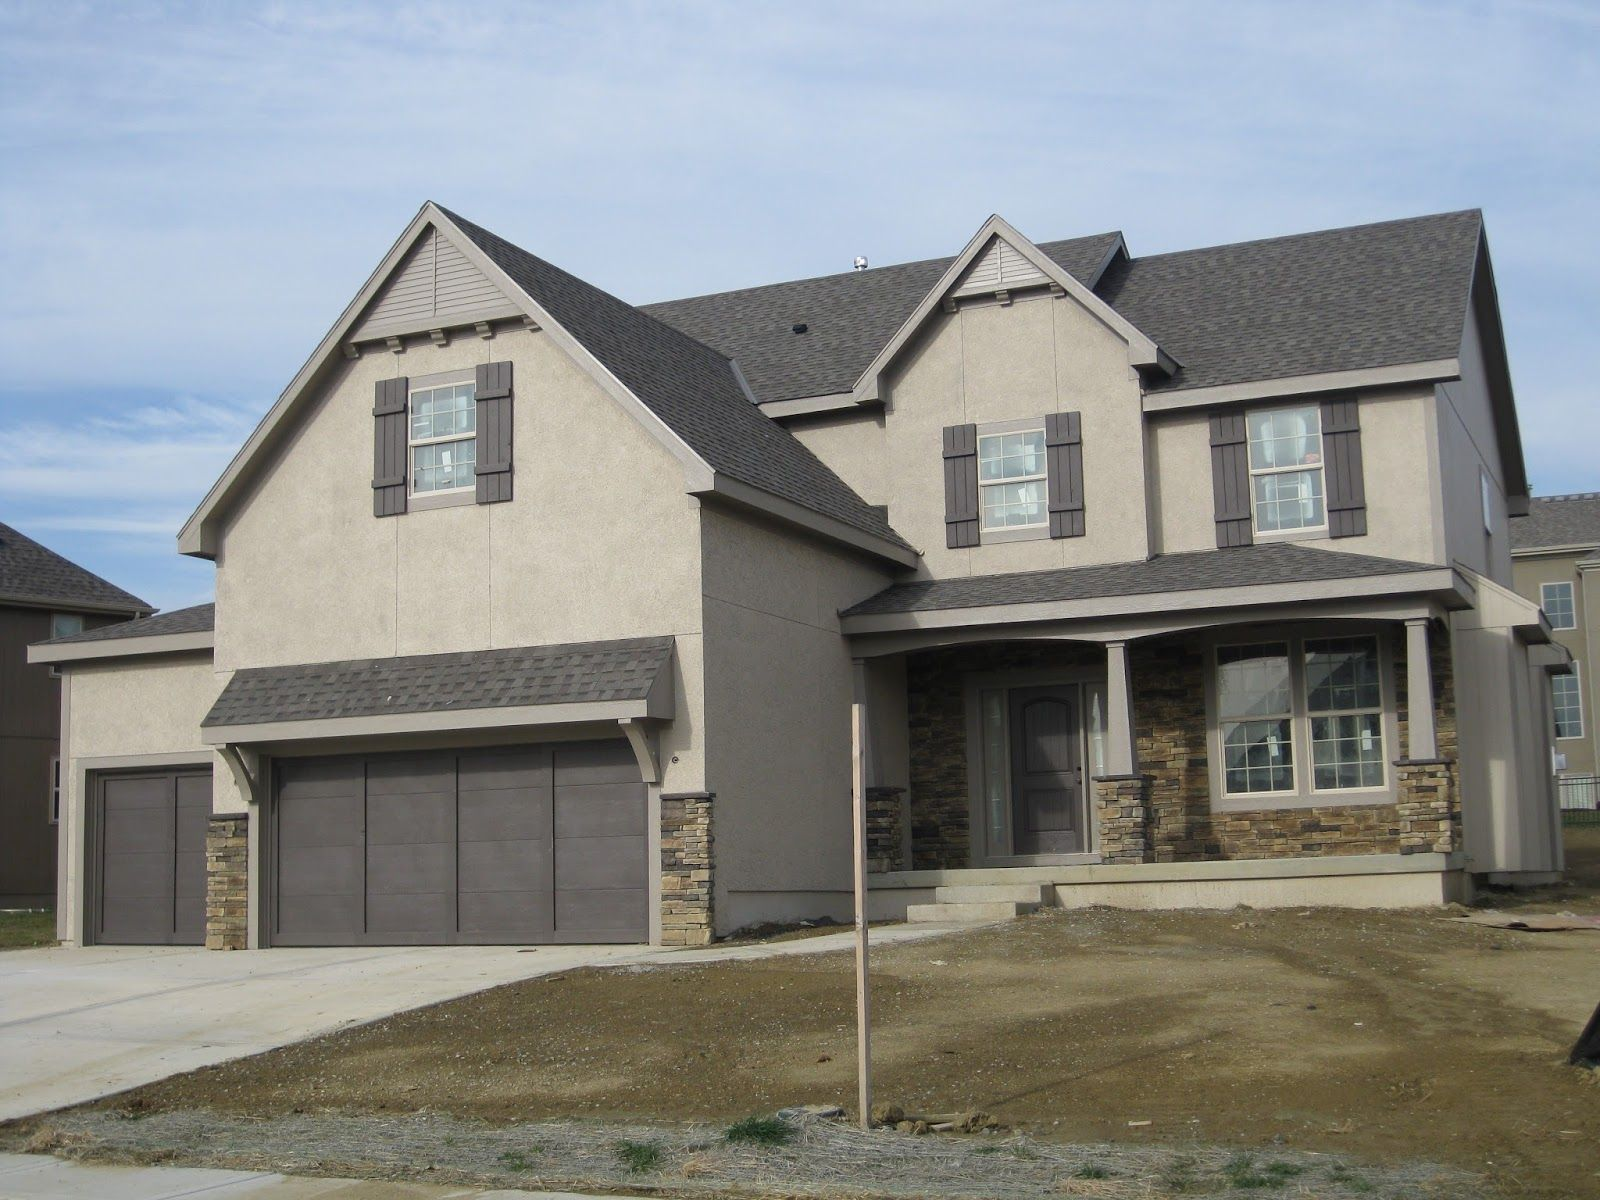 Exterior paint schemes for brown roofs - Apartments Interesting Home Exterior Color With Cream Wall